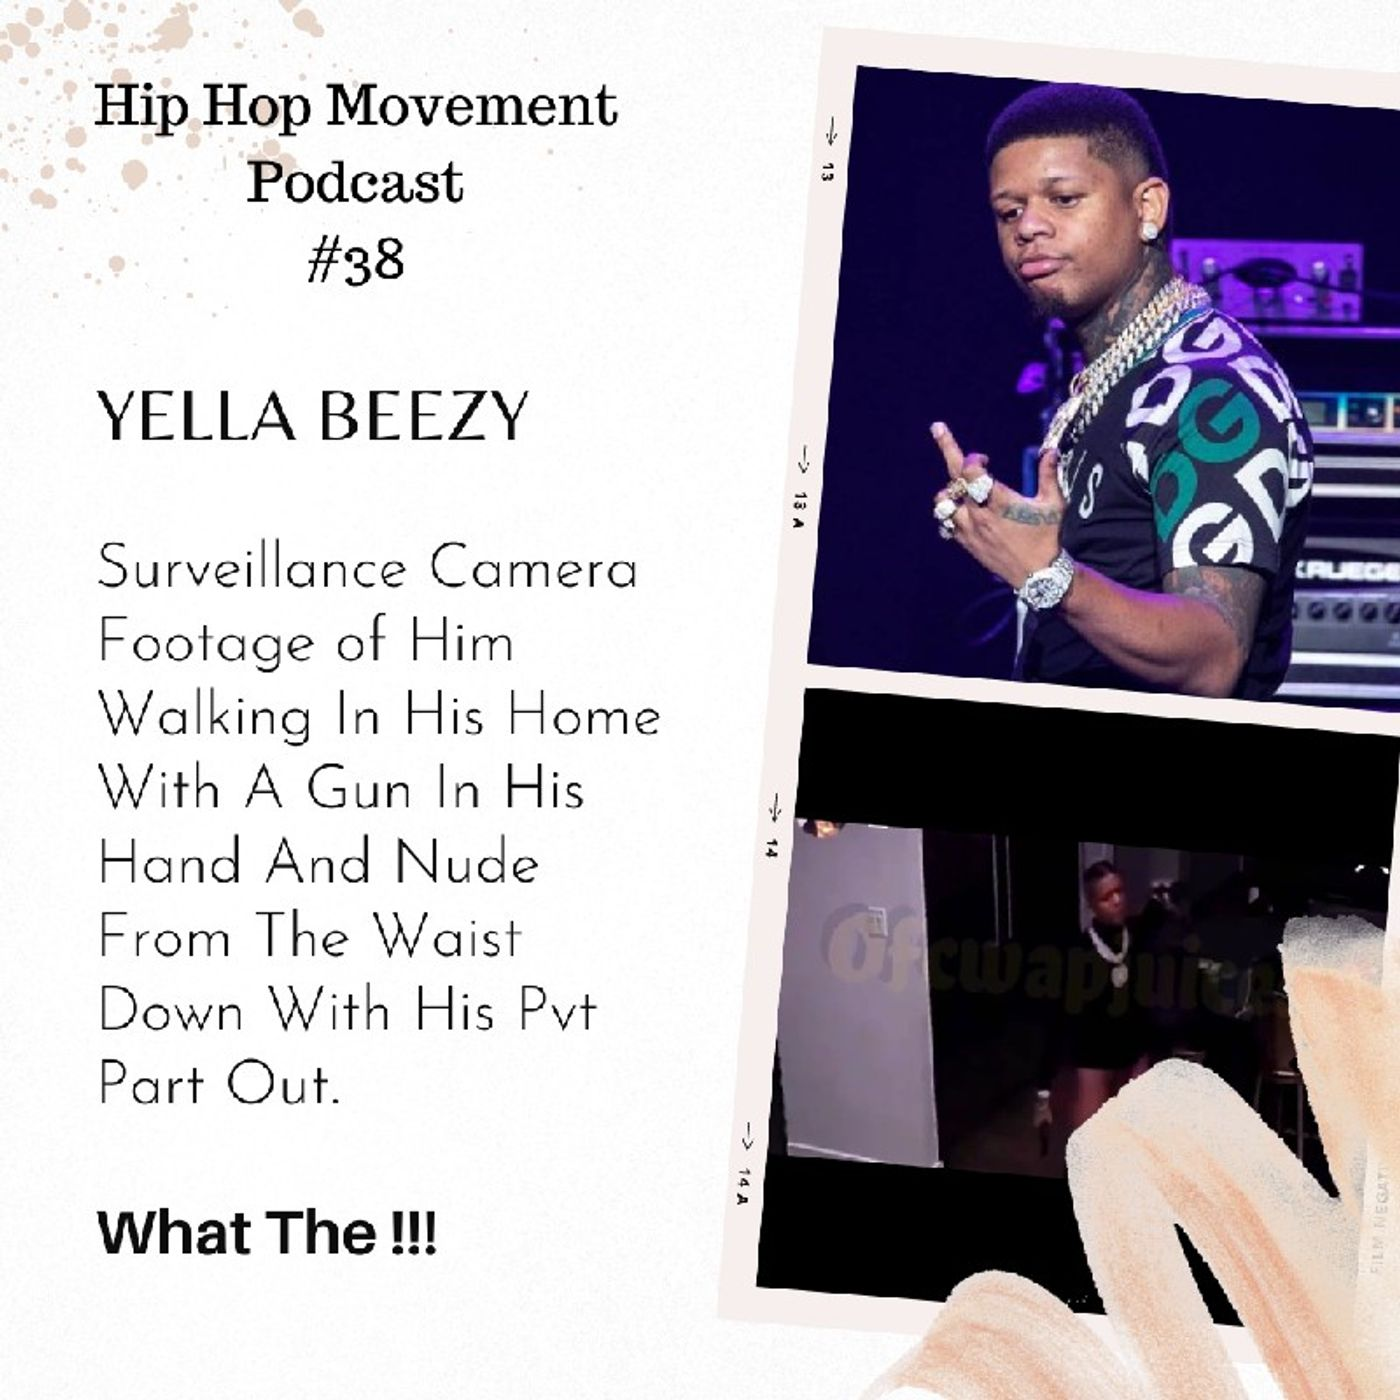 Episode 38 - Social Media Goes Nuts Over Rapper Yella Beezy nude video leak